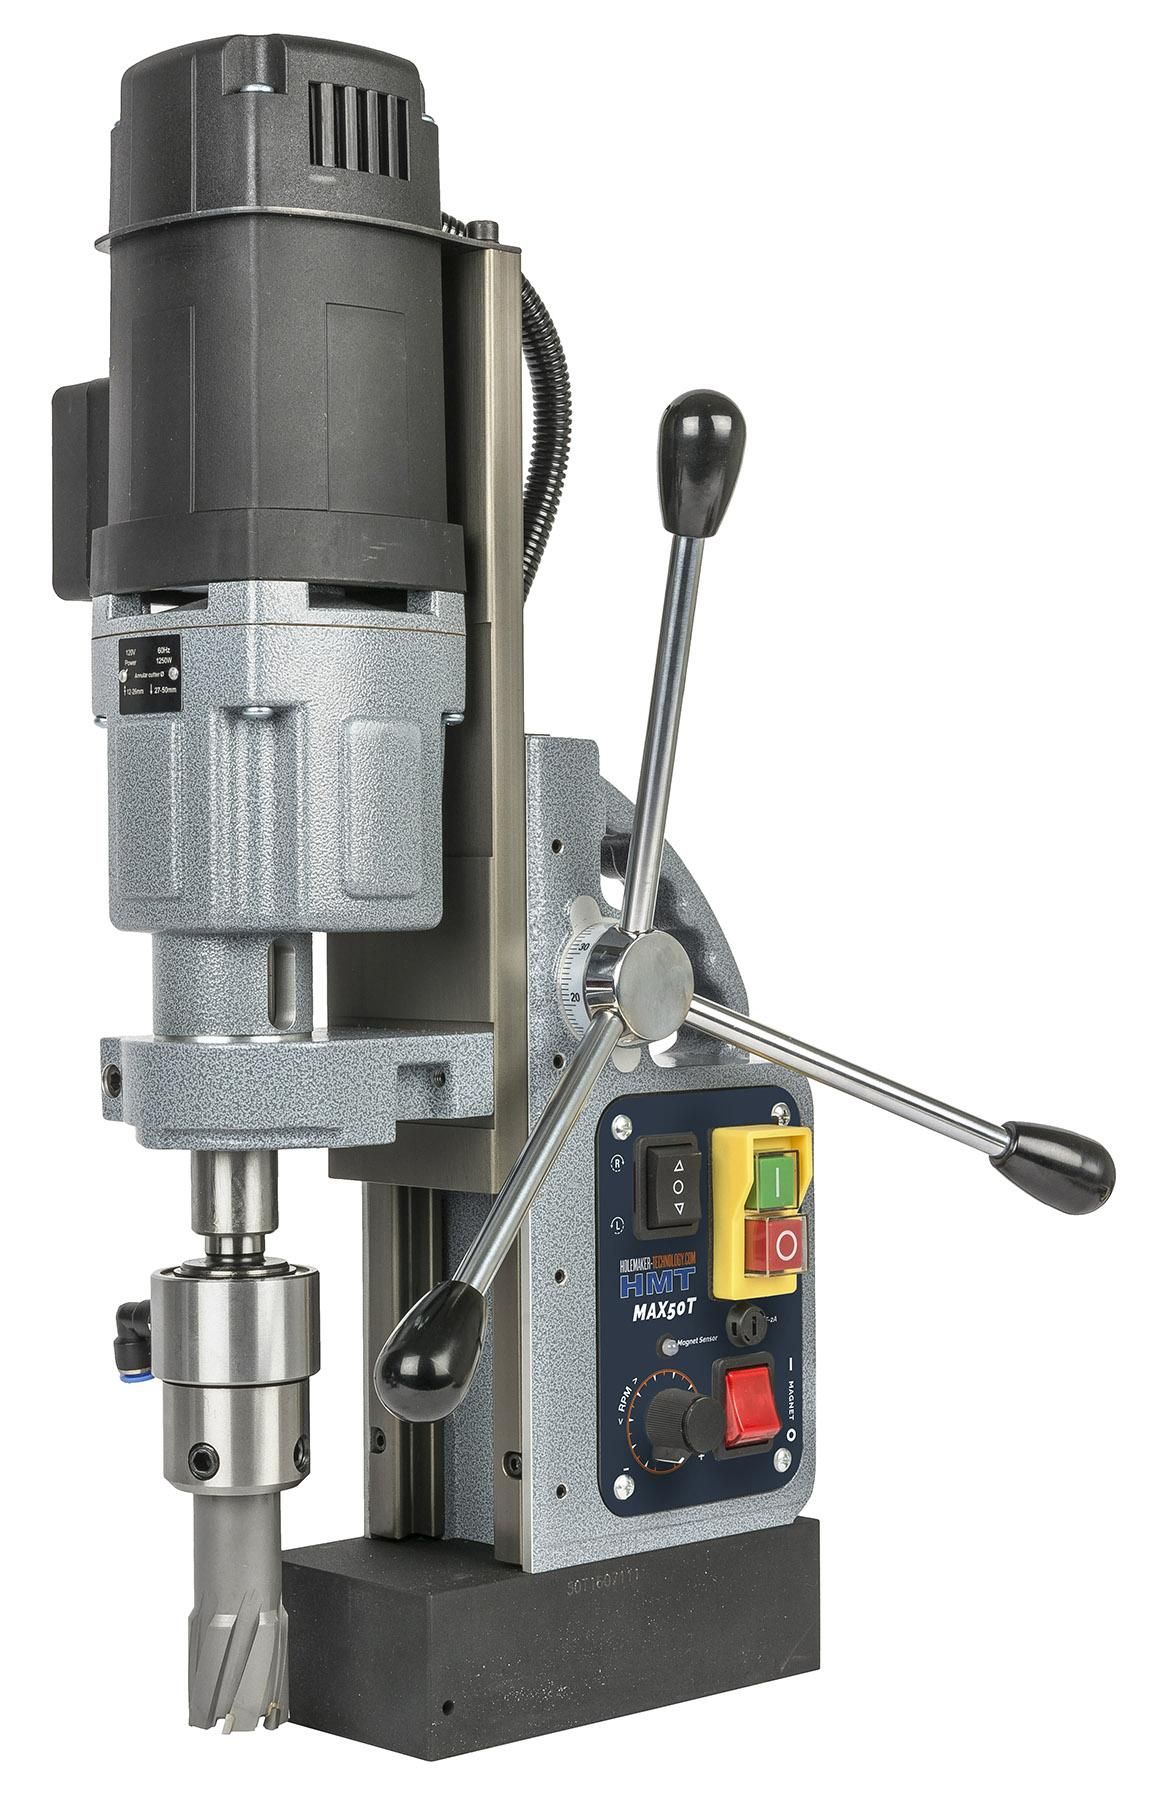 803050-0001  HMT Max-50T Tapping Magnet Drill 110 Volt